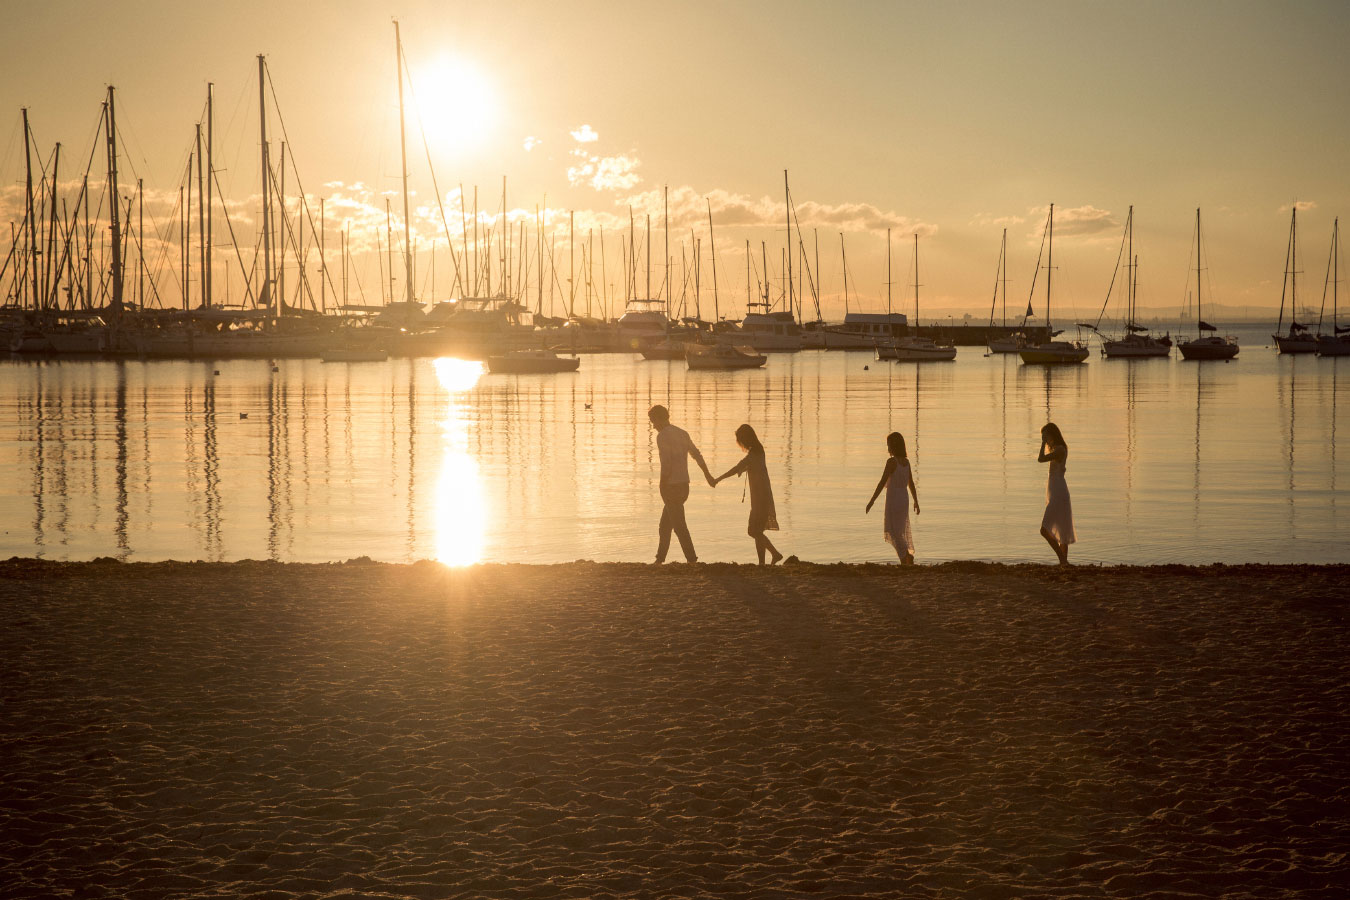 family-photographer-hampton-lifestyle-beach-sunset-87